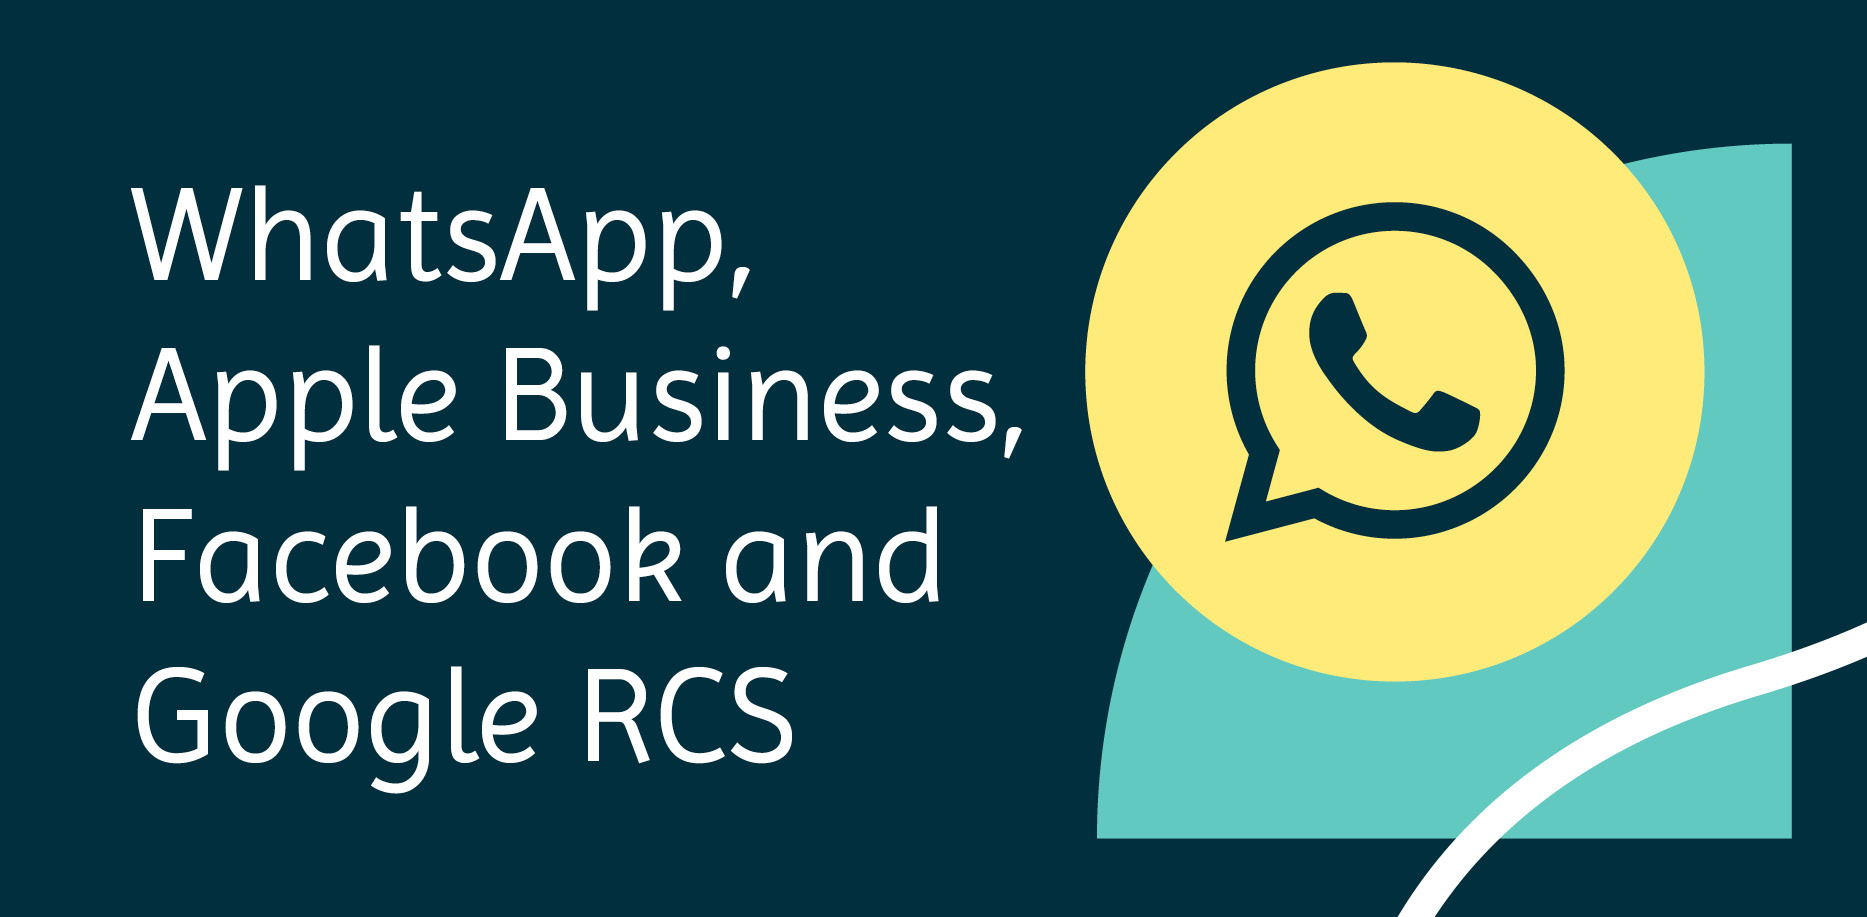 Whatsapp, apple business, facebook and google rcs